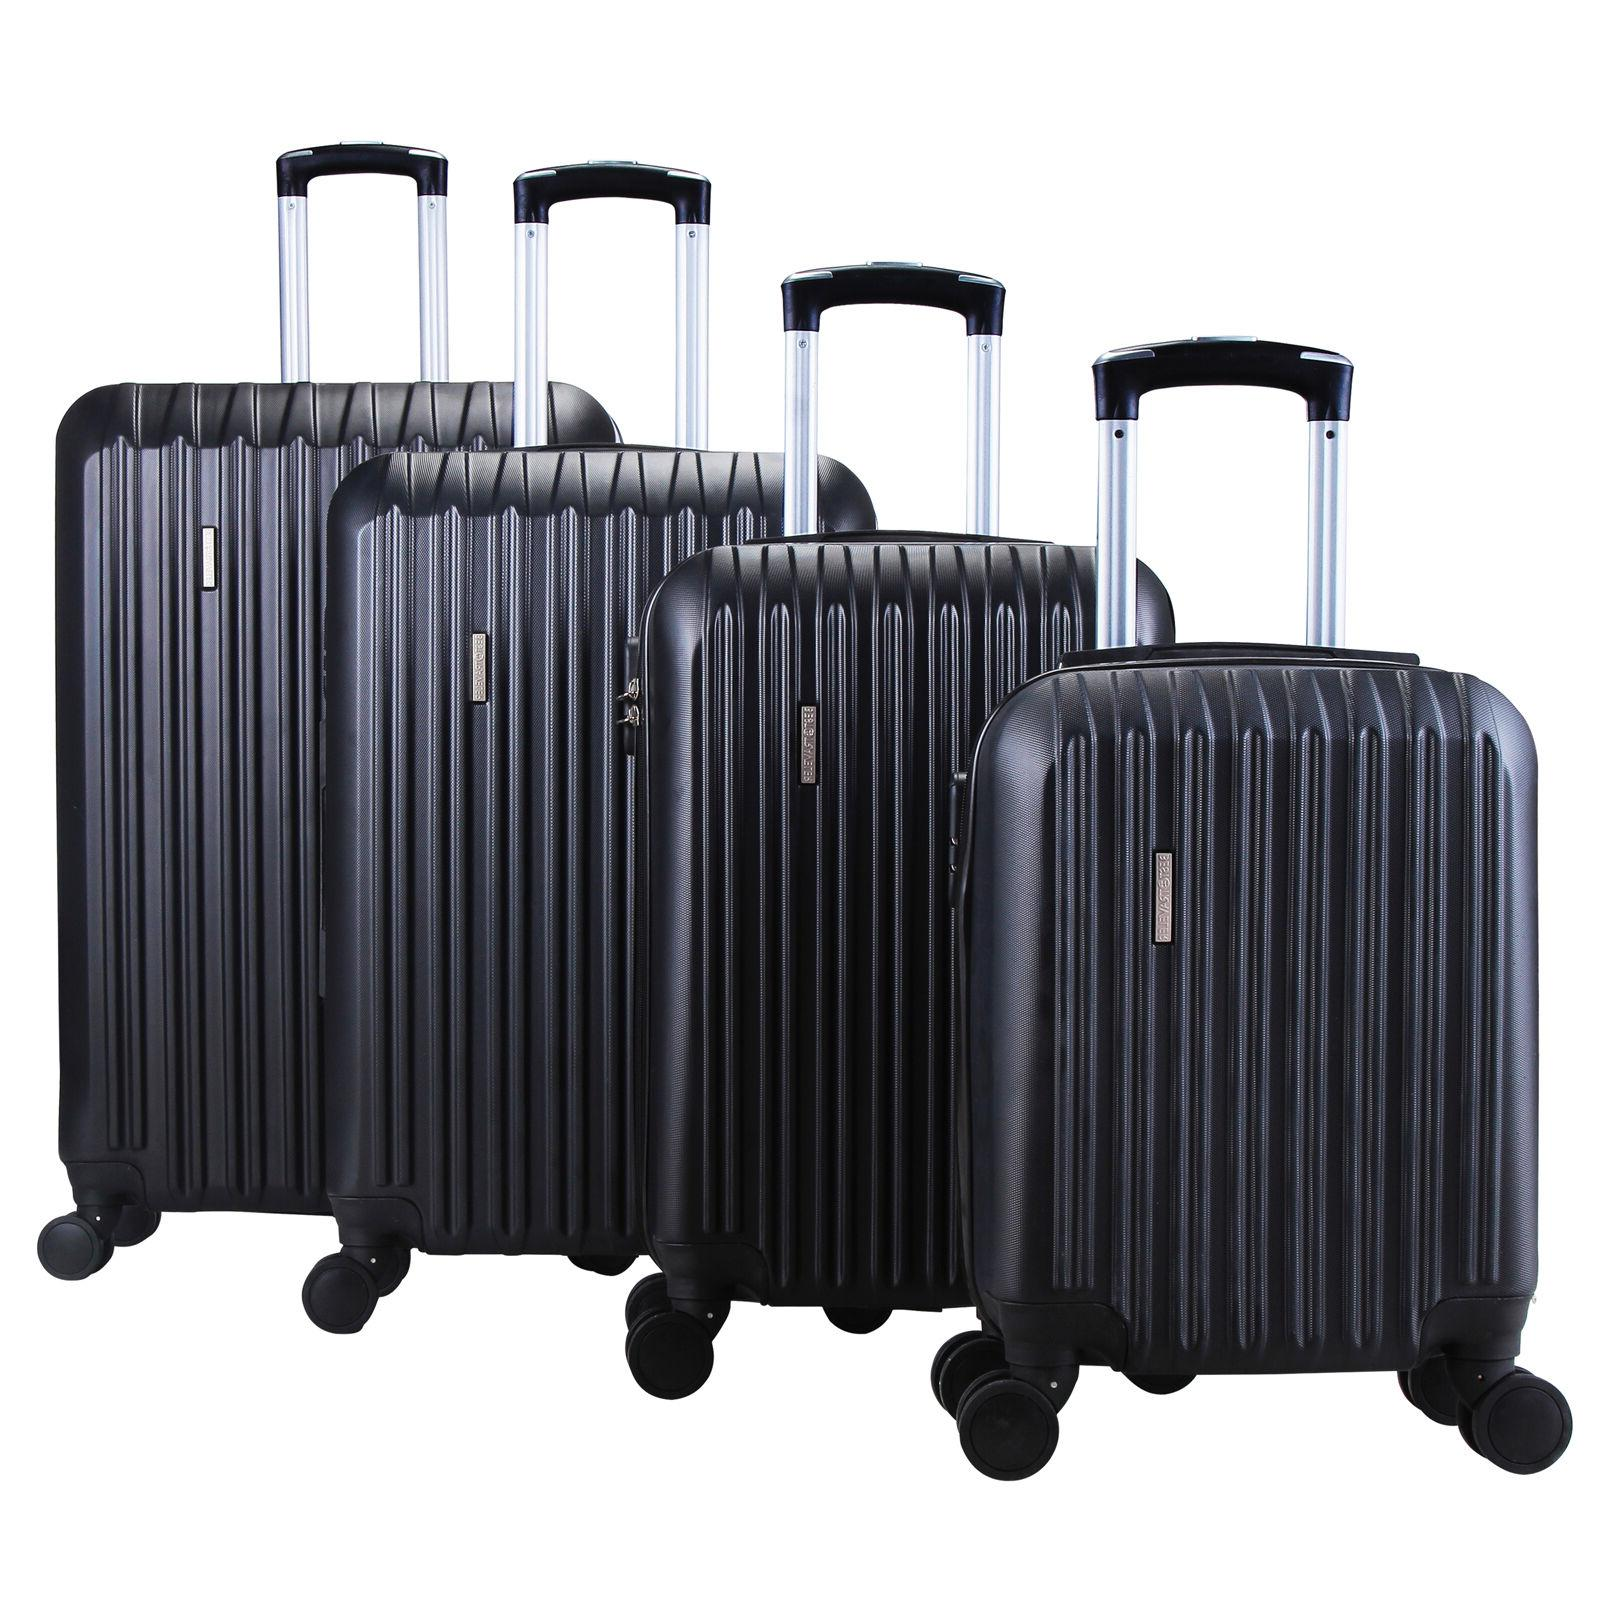 "4 ABS Luggage Set Light Travel Case Hardshell Suitcase 16""20""24""28"""